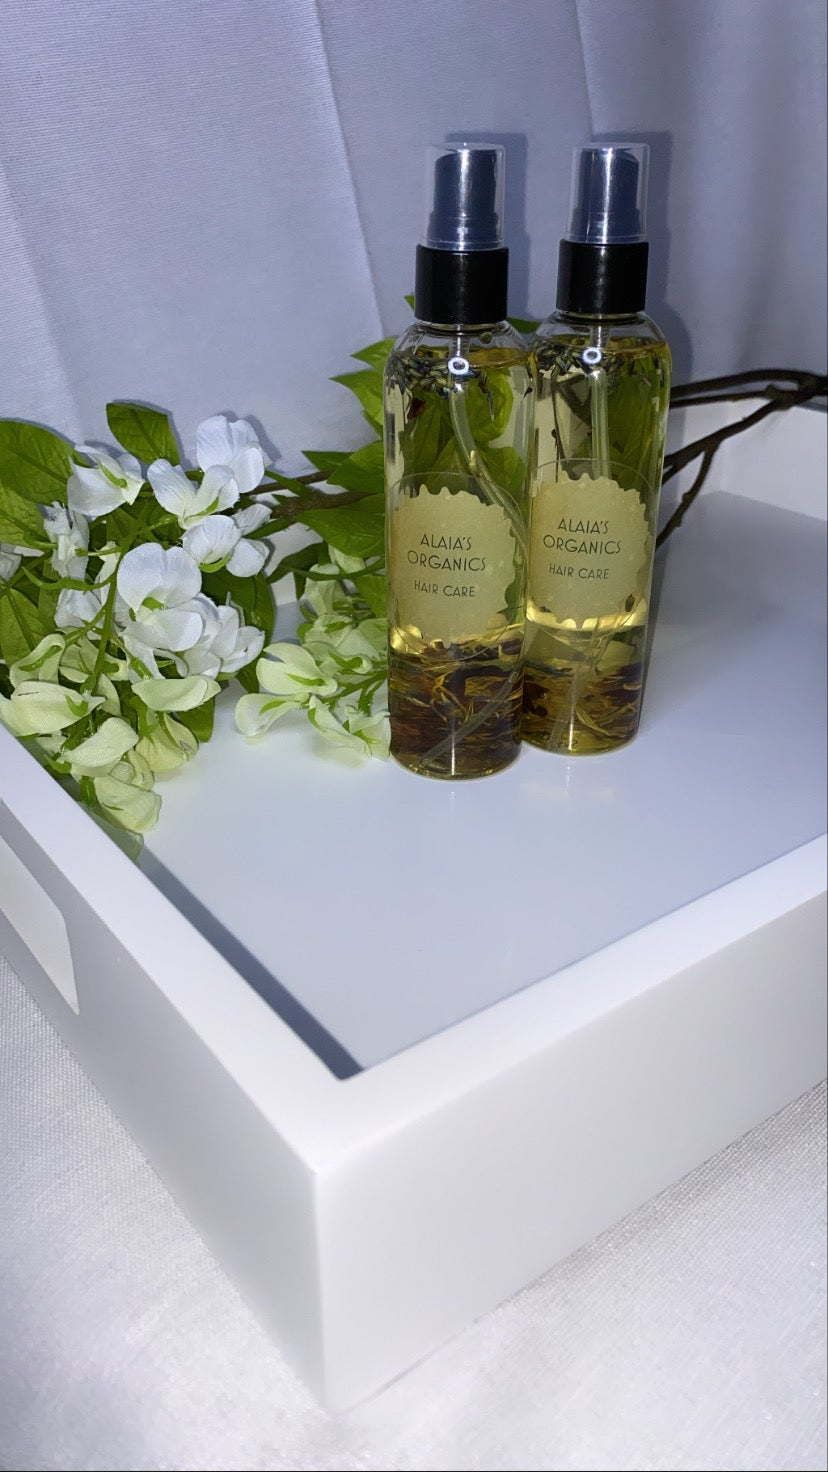 Image of Alaia's Organics Hair Star Nourishing Hair Oil